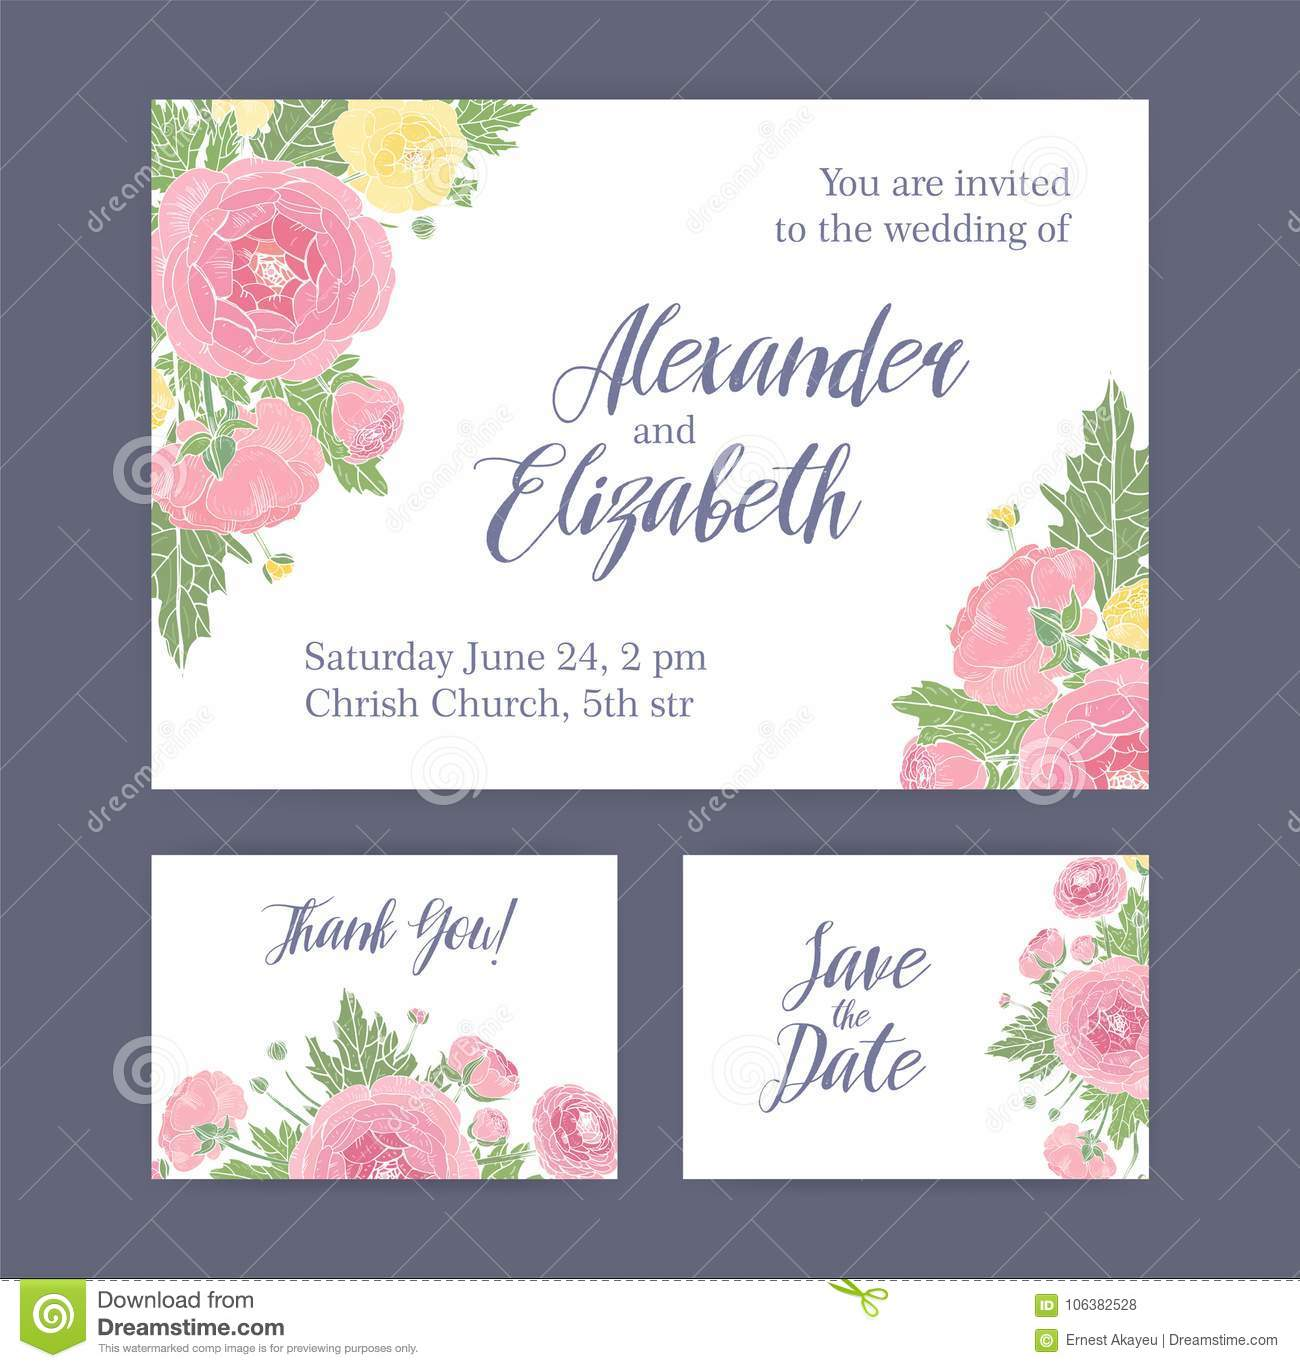 Thank You Letter For Wedding Invitation: Set Of Wedding Invitation, Save The Date Card And Thank